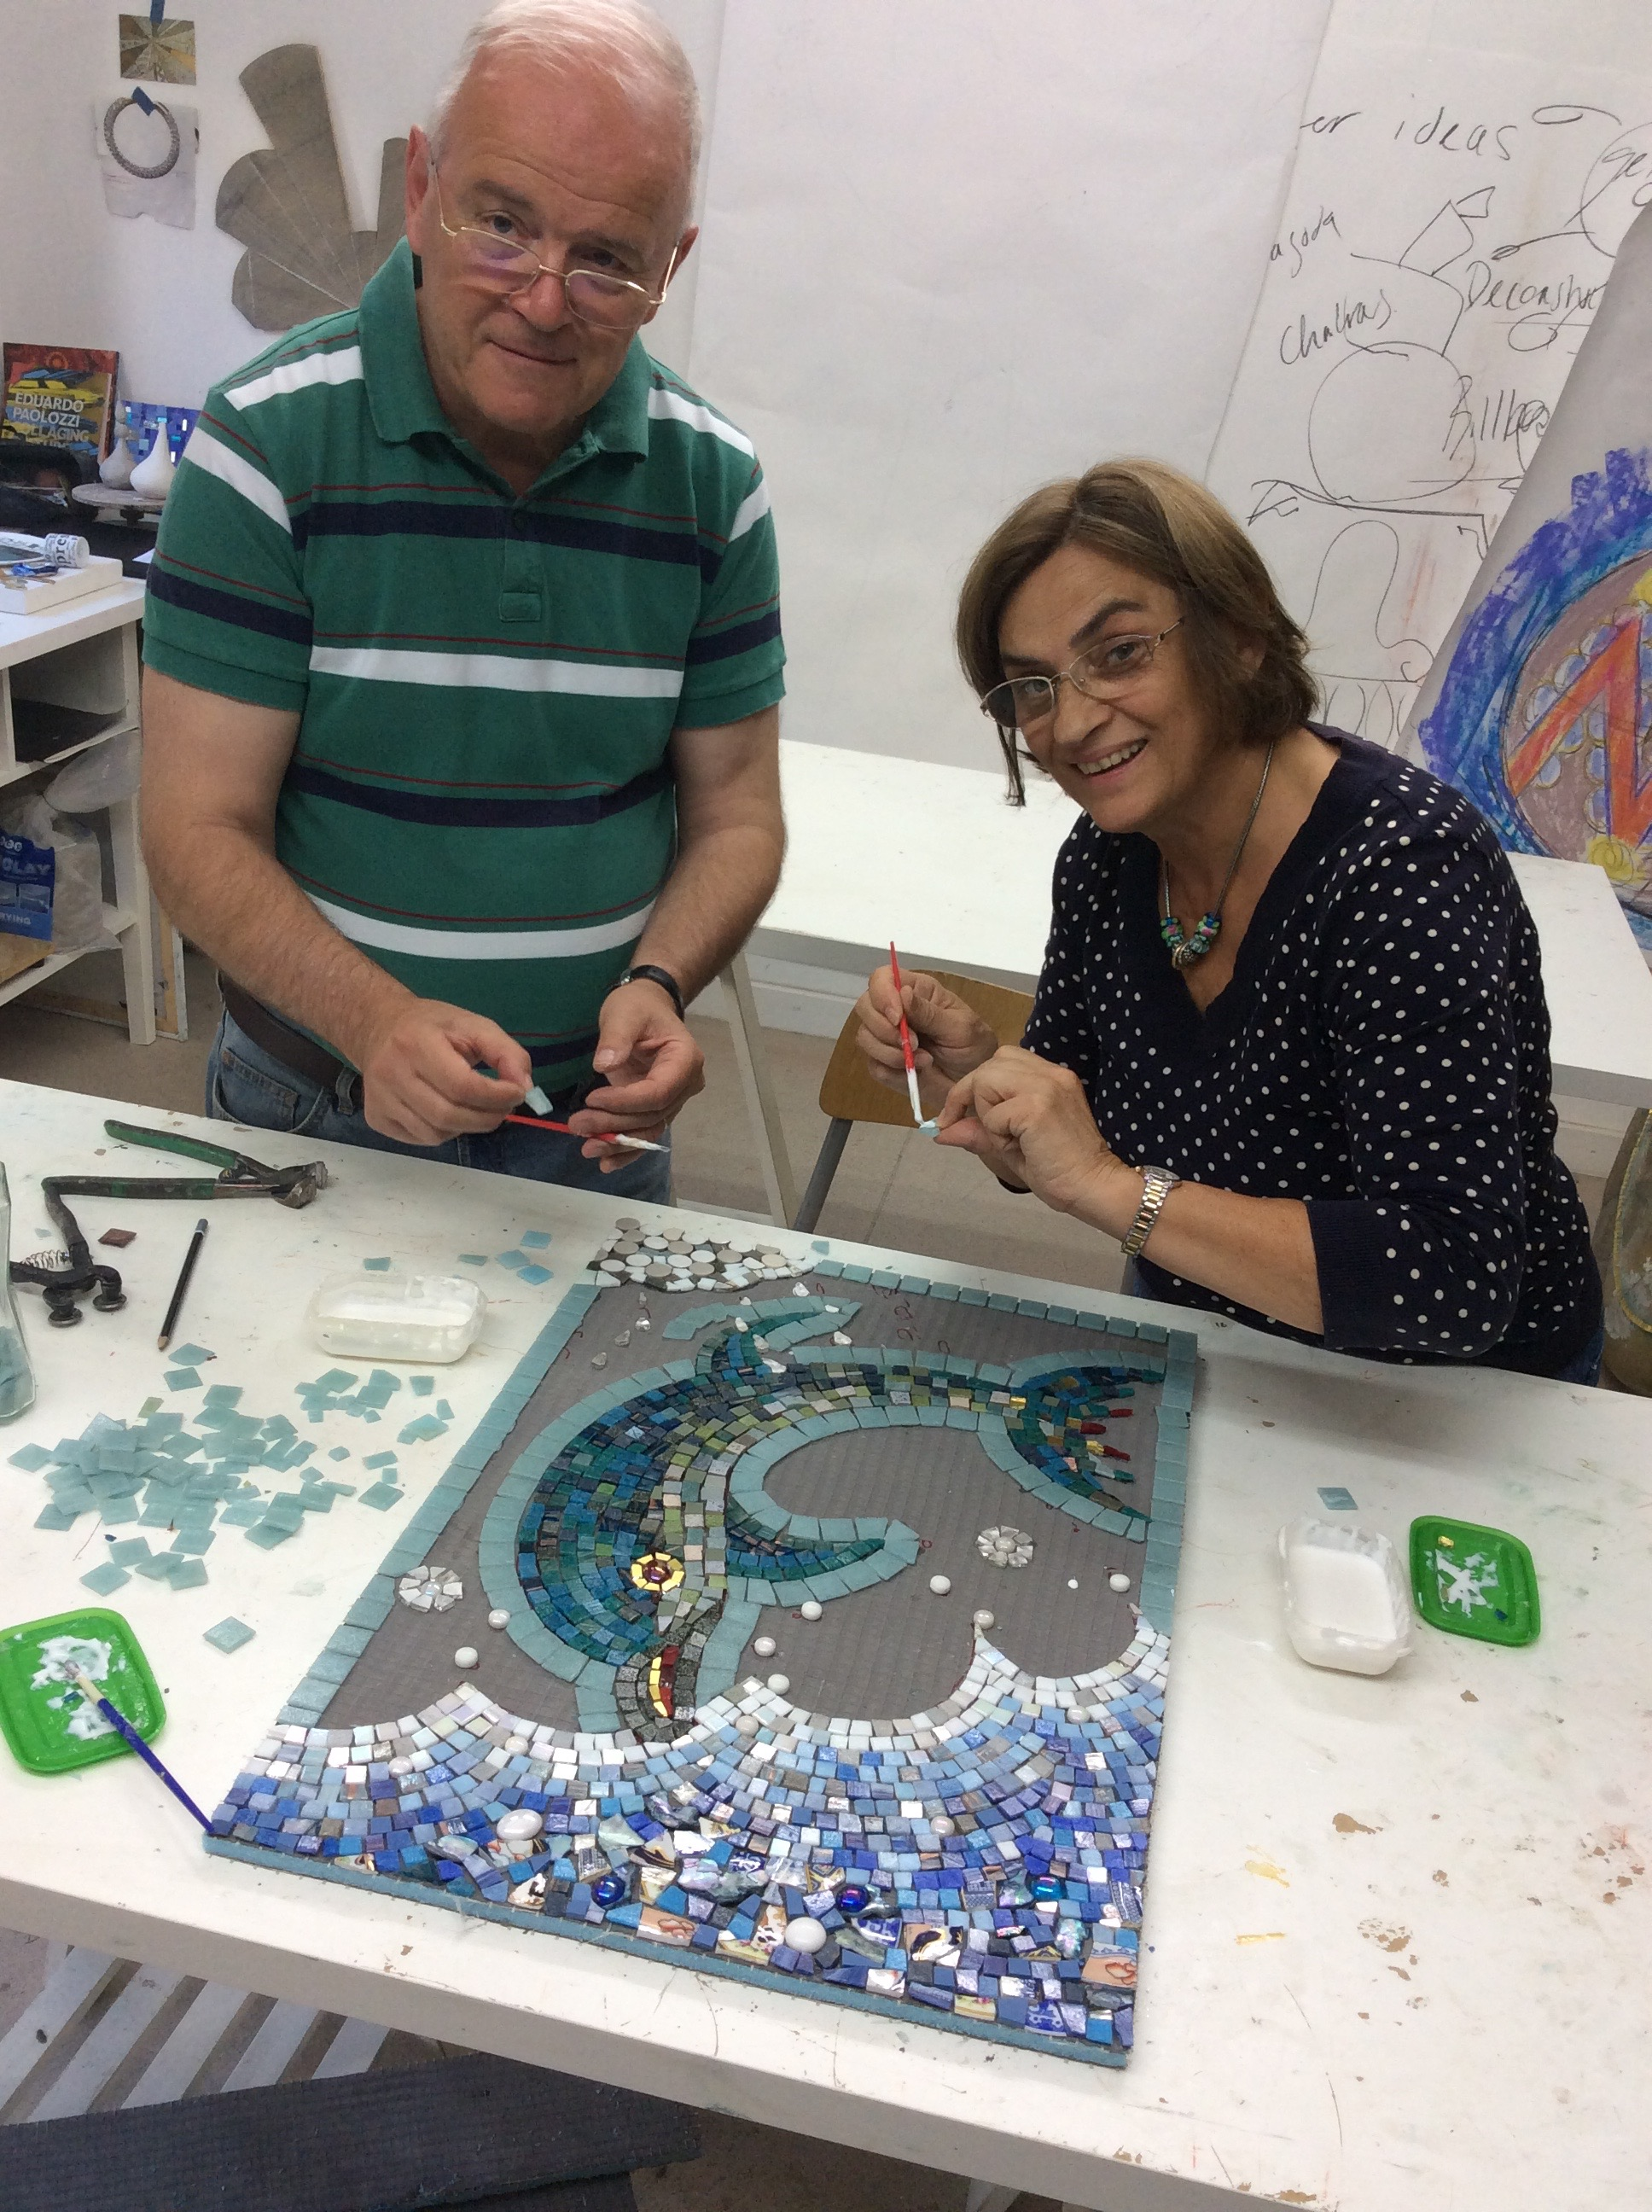 Elena & Chris took the famous 'Delos' dolphin image as their starting point to create this lovely panel for their bathroom. We worked together and created it in a day.